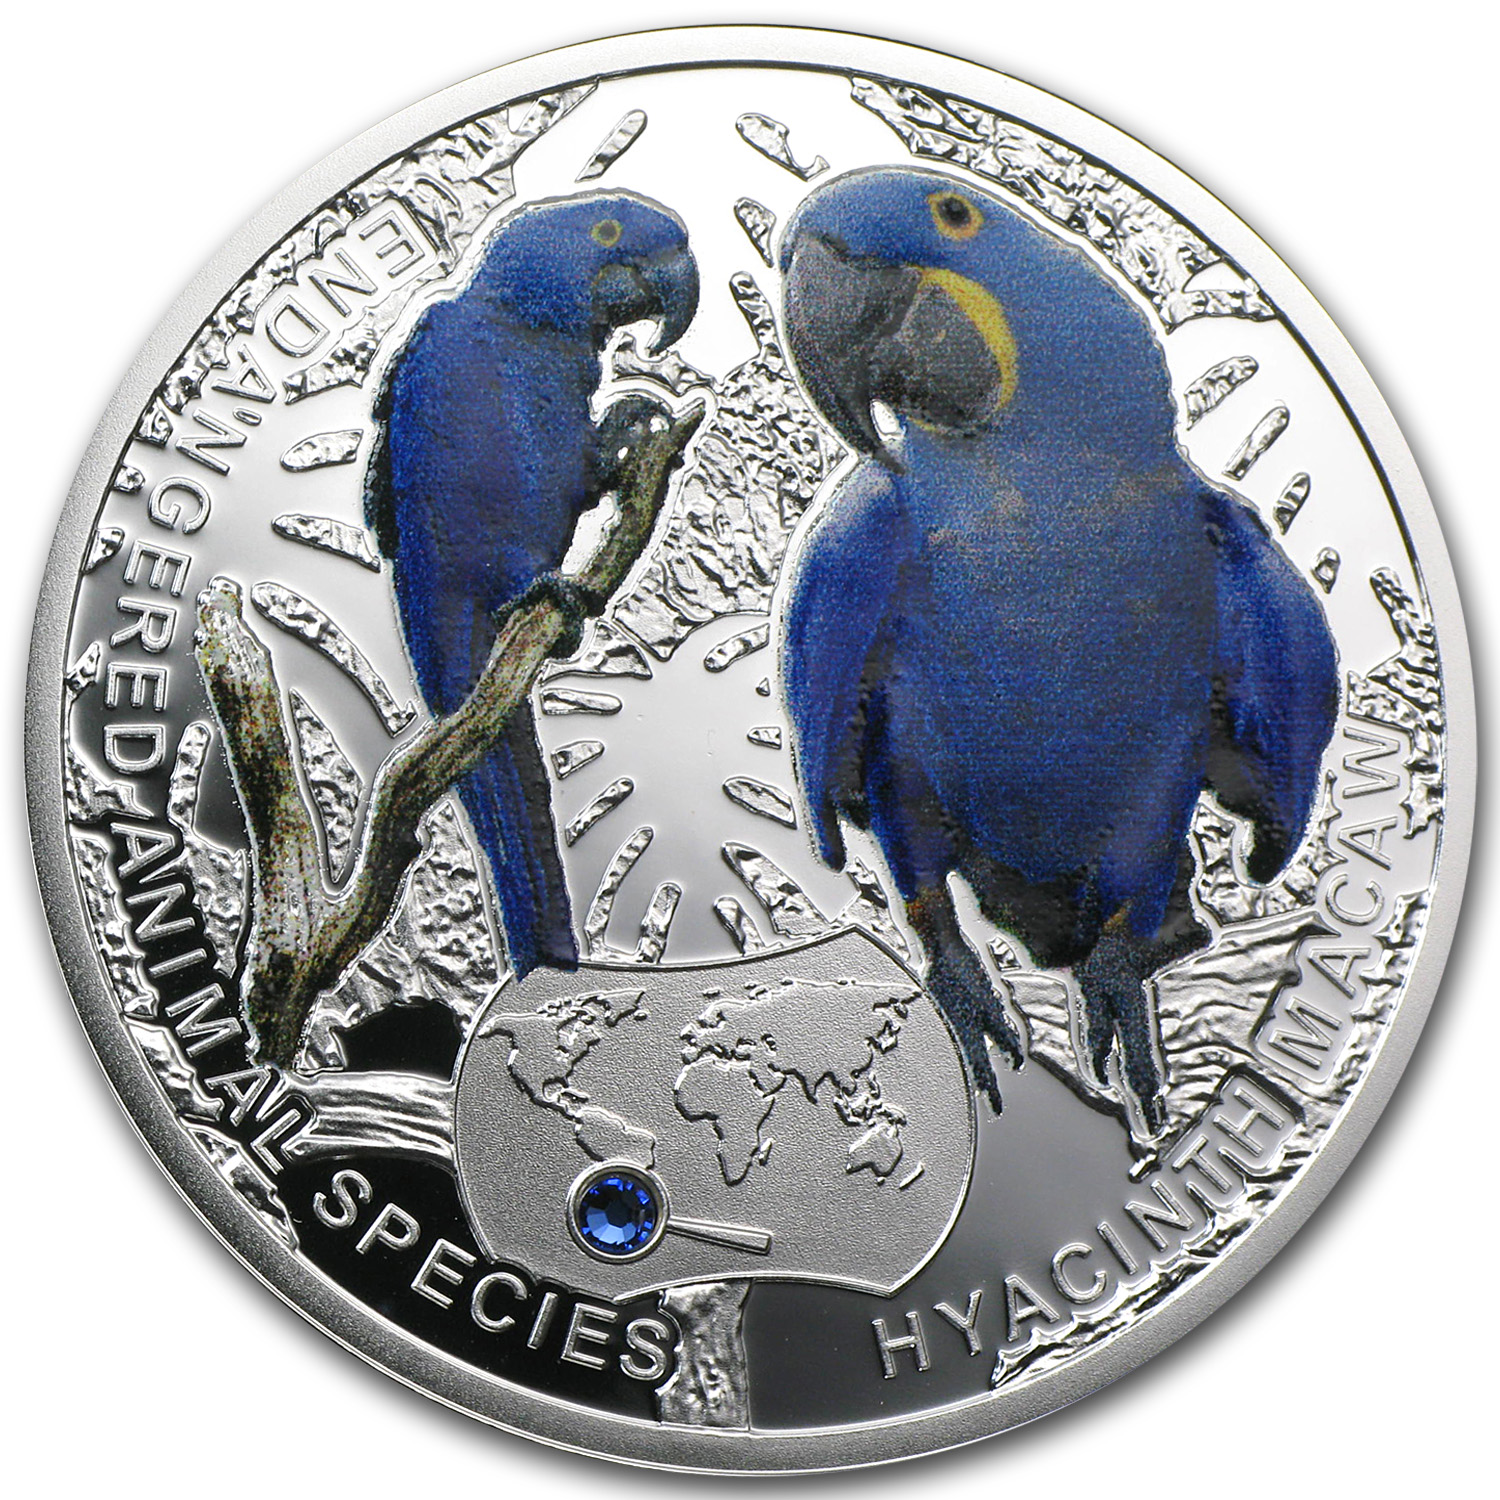 2014 Niue Proof Silver Endangered Animal Species Hyacinth Macaw